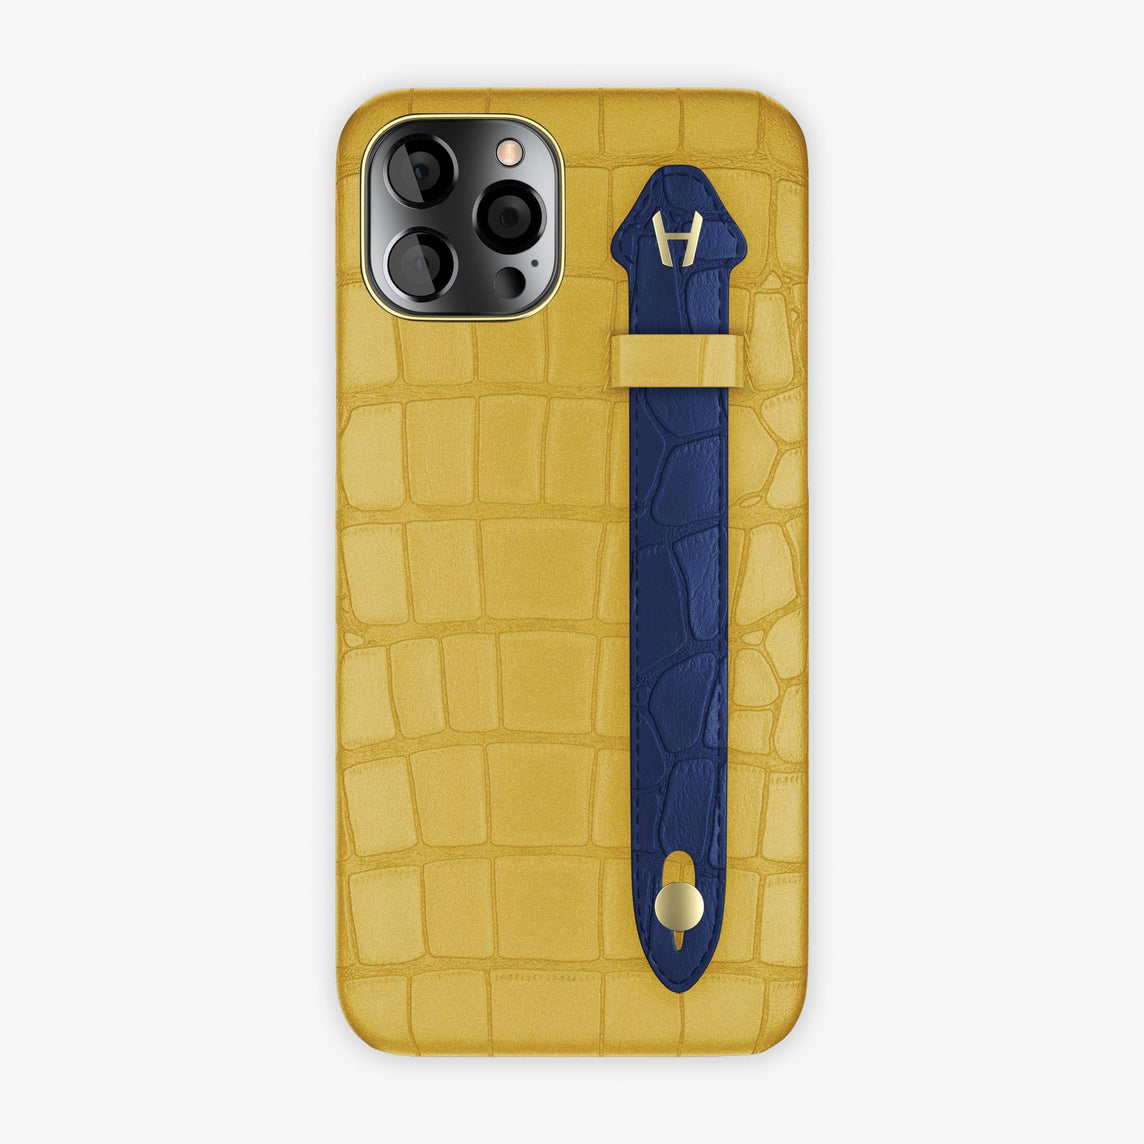 Alligator Side Finger Case iPhone 12 Pro Max | Gold/Navy Blue - Yellow-Gold